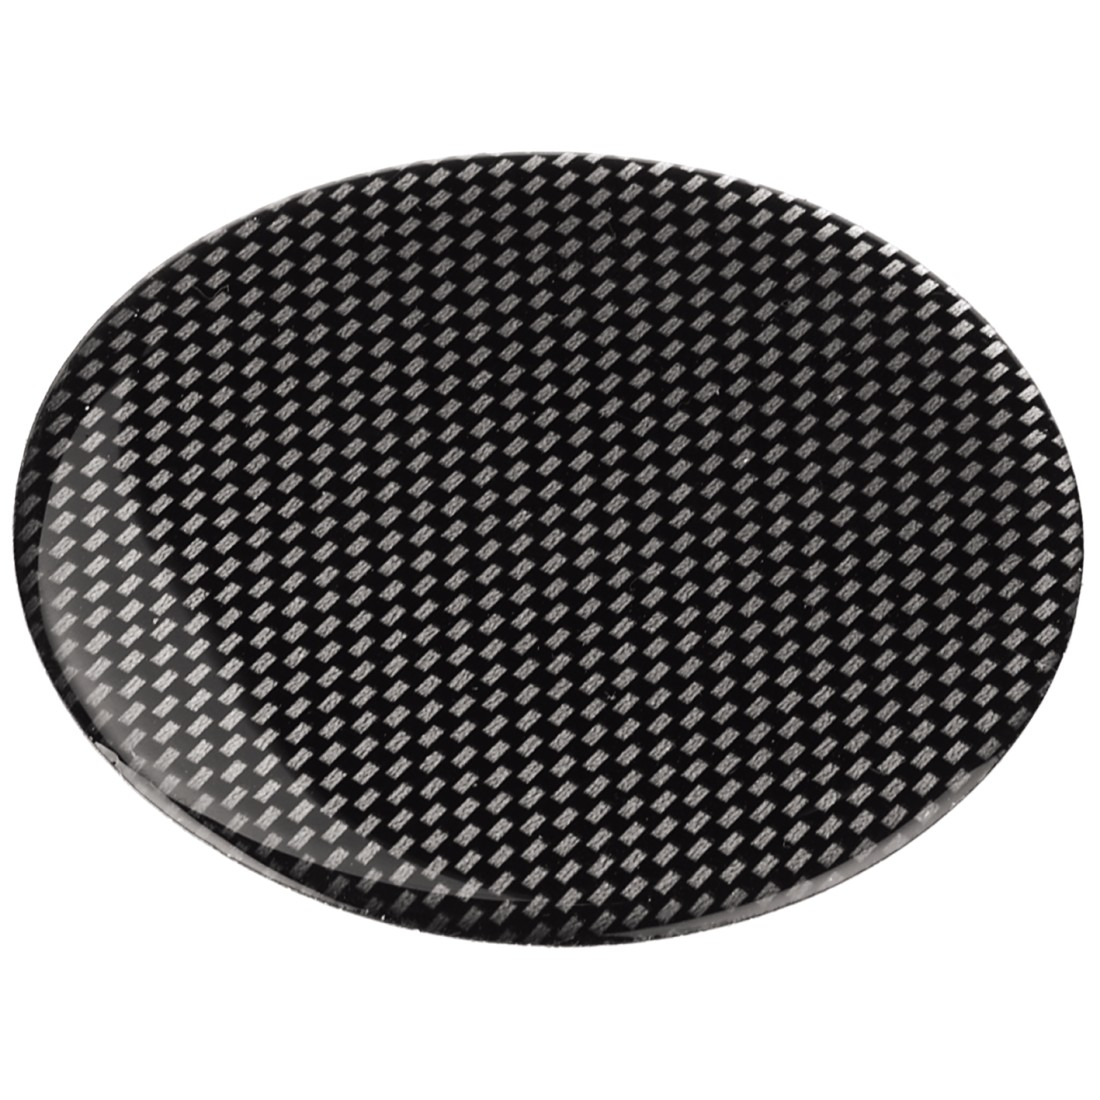 abx High-Res Image - Hama, Adapter Plate for Suction Cup Bracket, 75 mm, self-adhesive